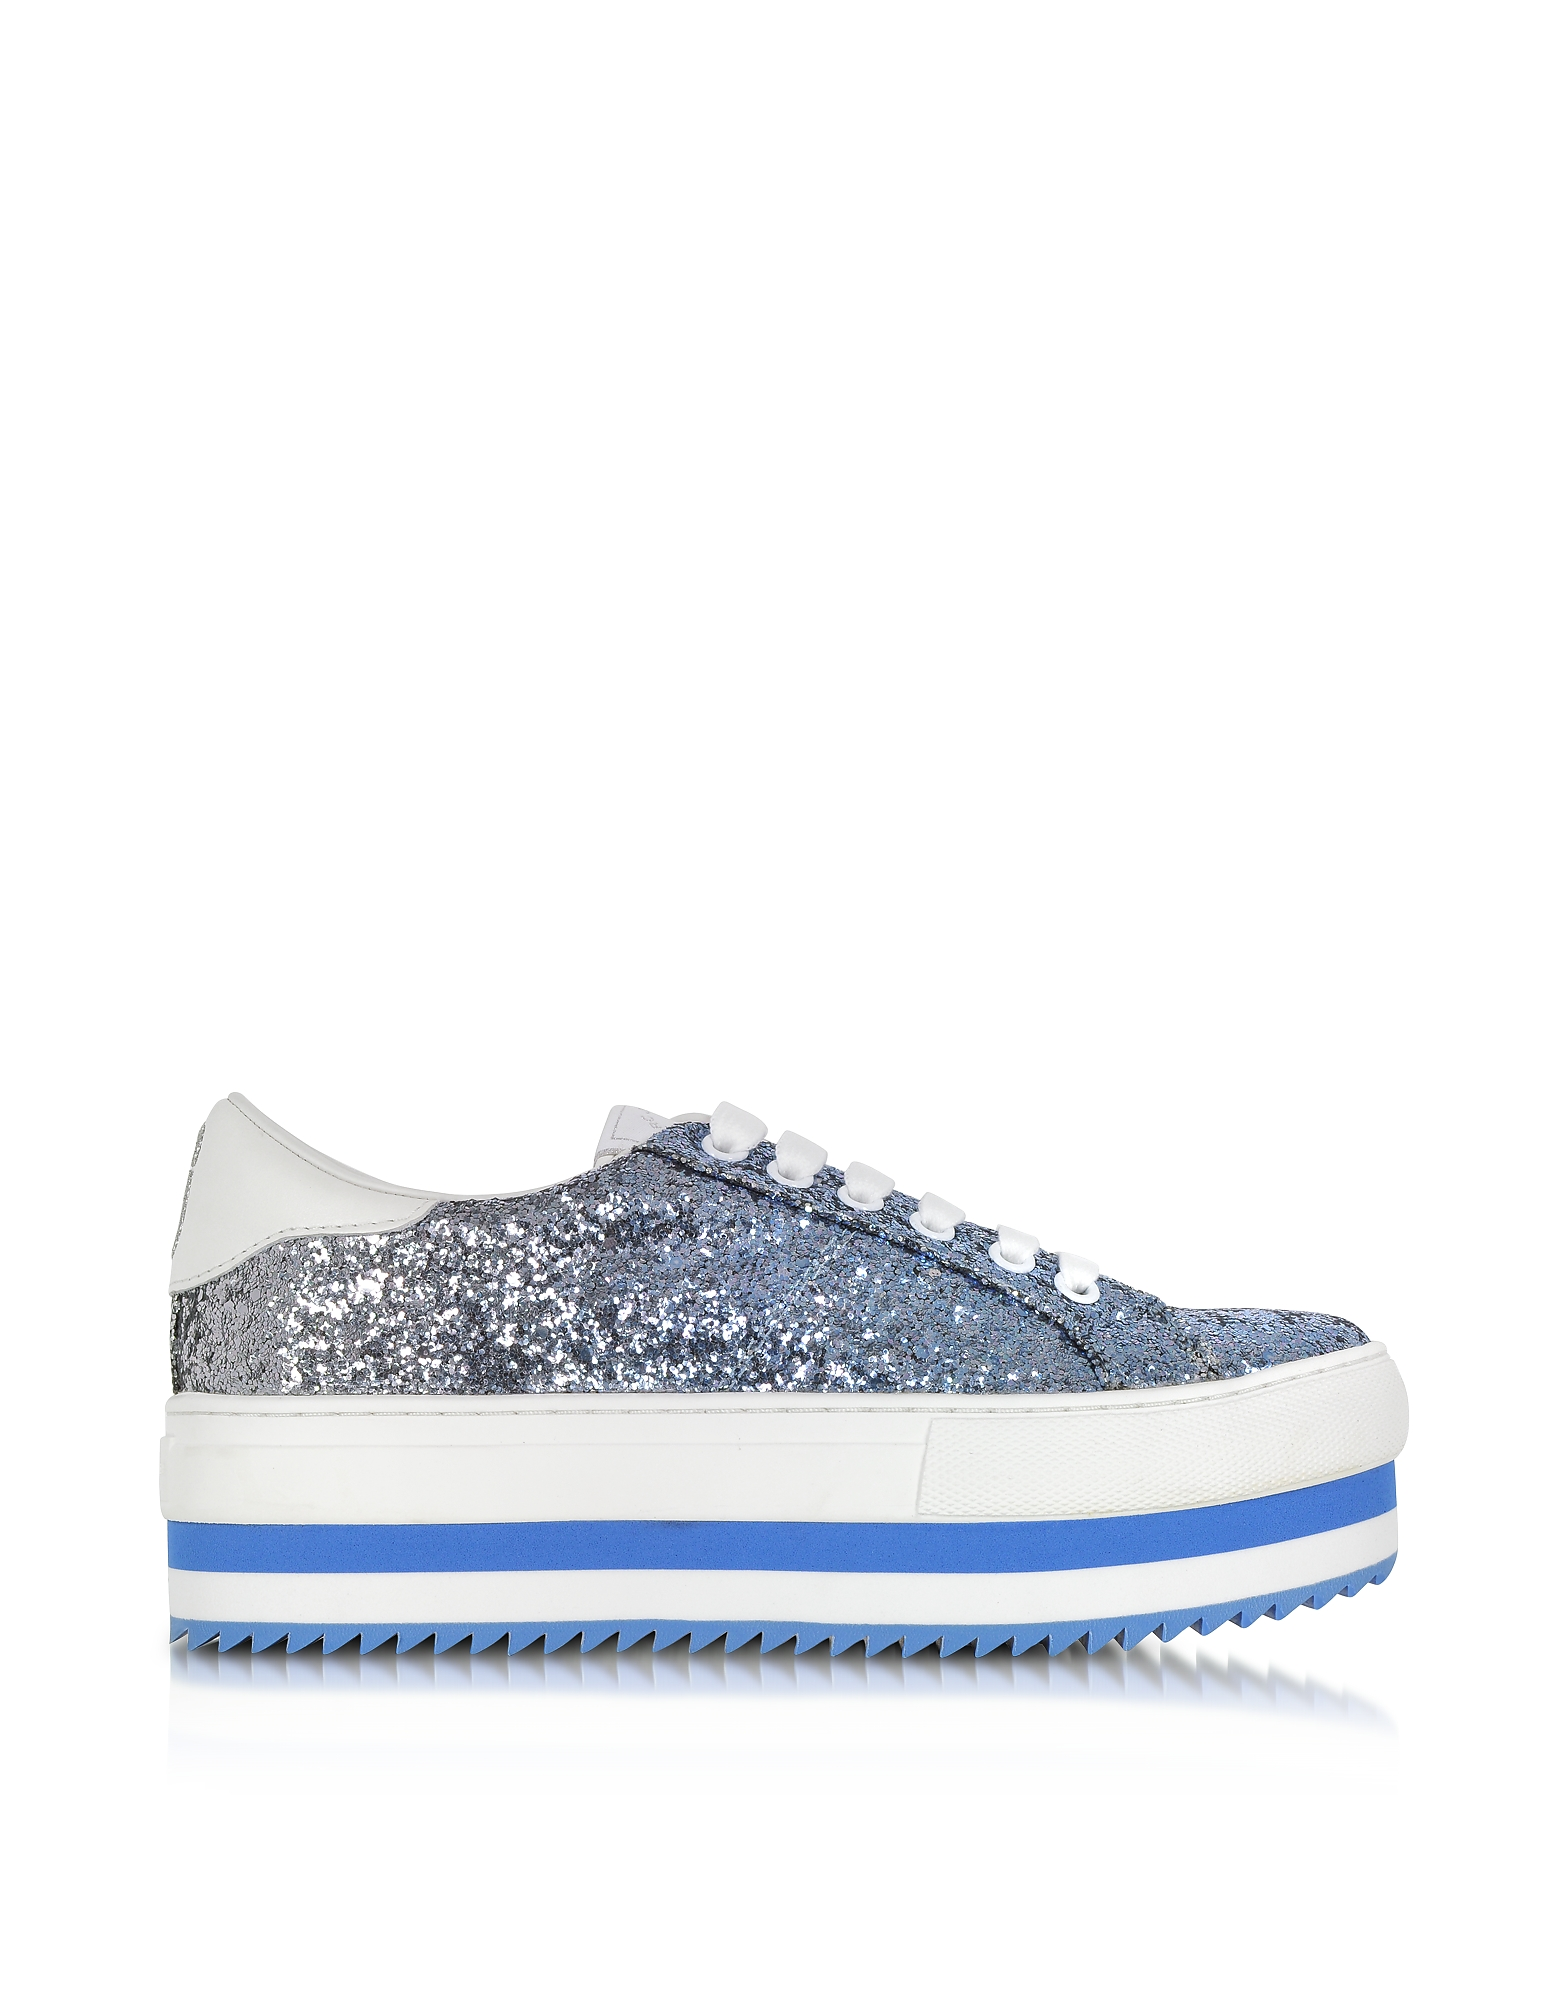 Marc Jacobs Shoes, Blue Glitter Grand Flatform Lace Up Sneakers